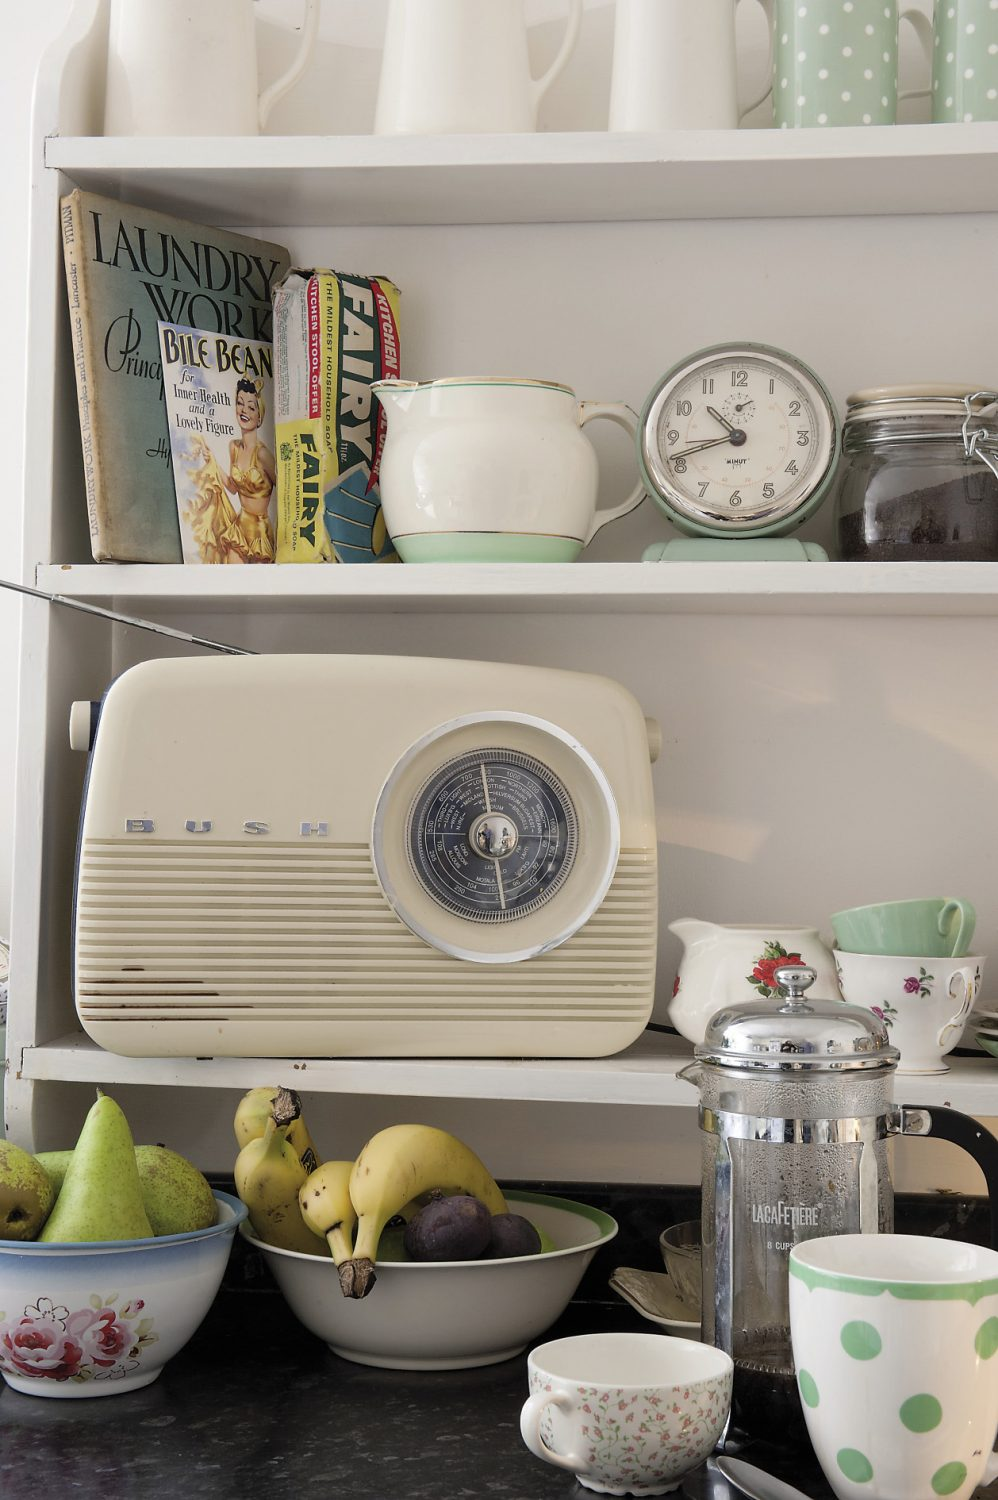 A retro style ivory Bakelite Bush radio stands on the shelves above the kitchen counter and there are more cream and green enamel storage tins as well as a large bar of 'Fairy' household soap in its original 1950s packaging